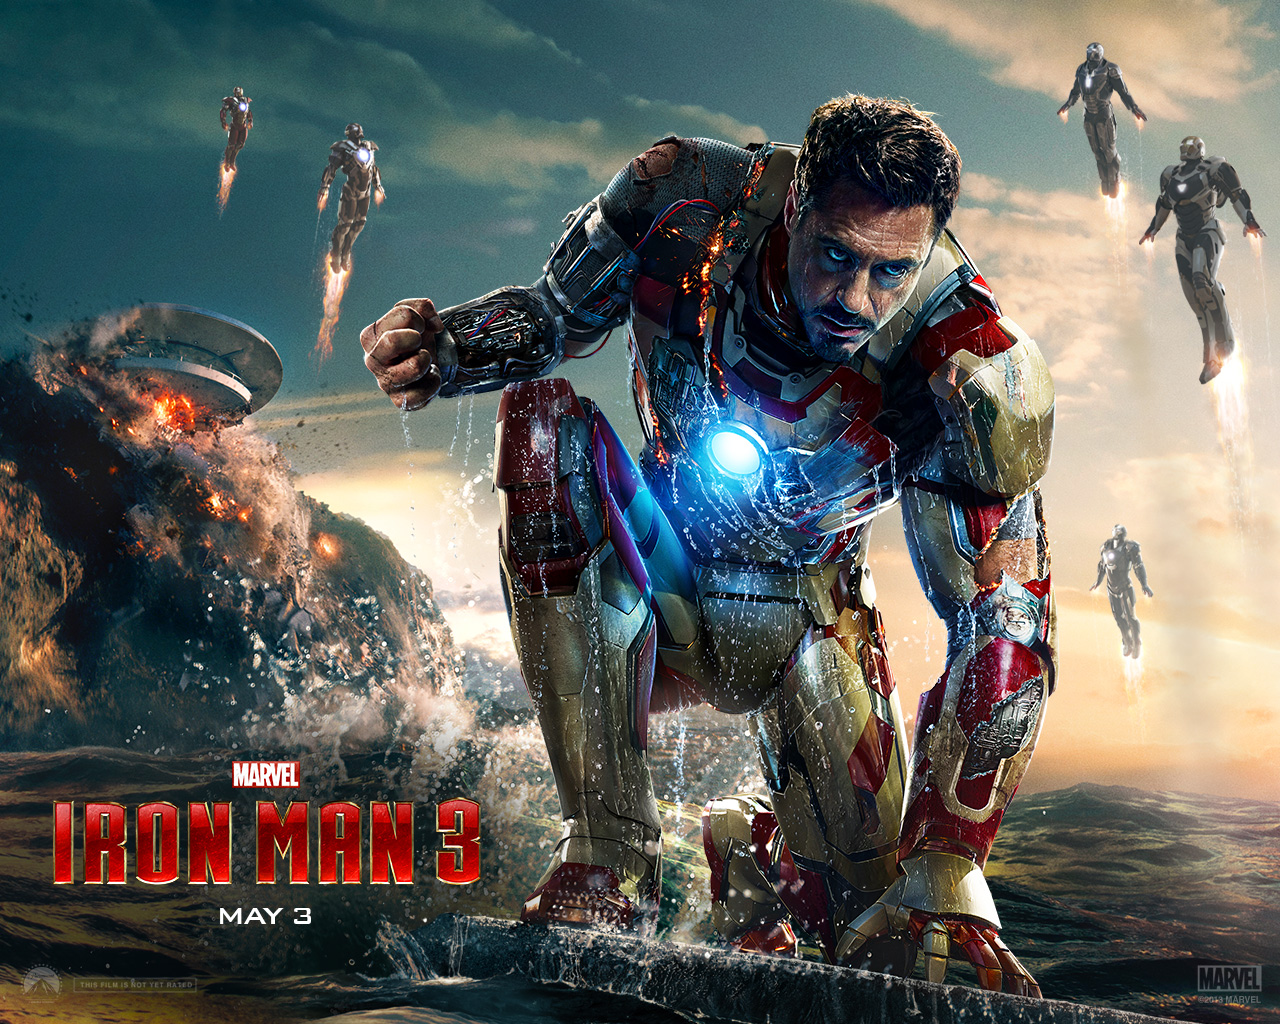 Iron Man 3 wallpaper 1280x1024 007